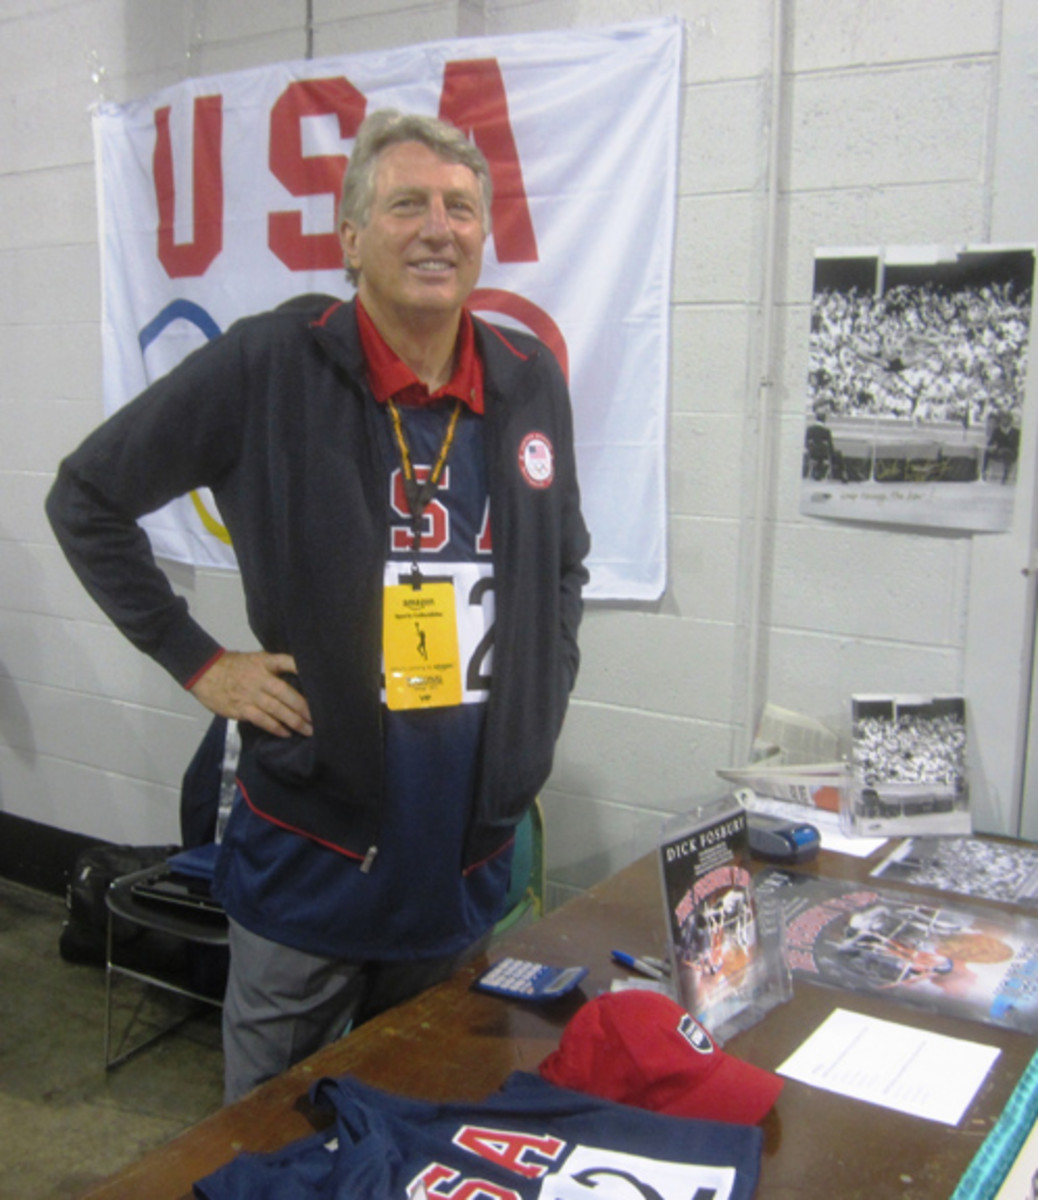 Dick Fosbury, the most famous American Olympic high jumper, was there to represent World Olympians.